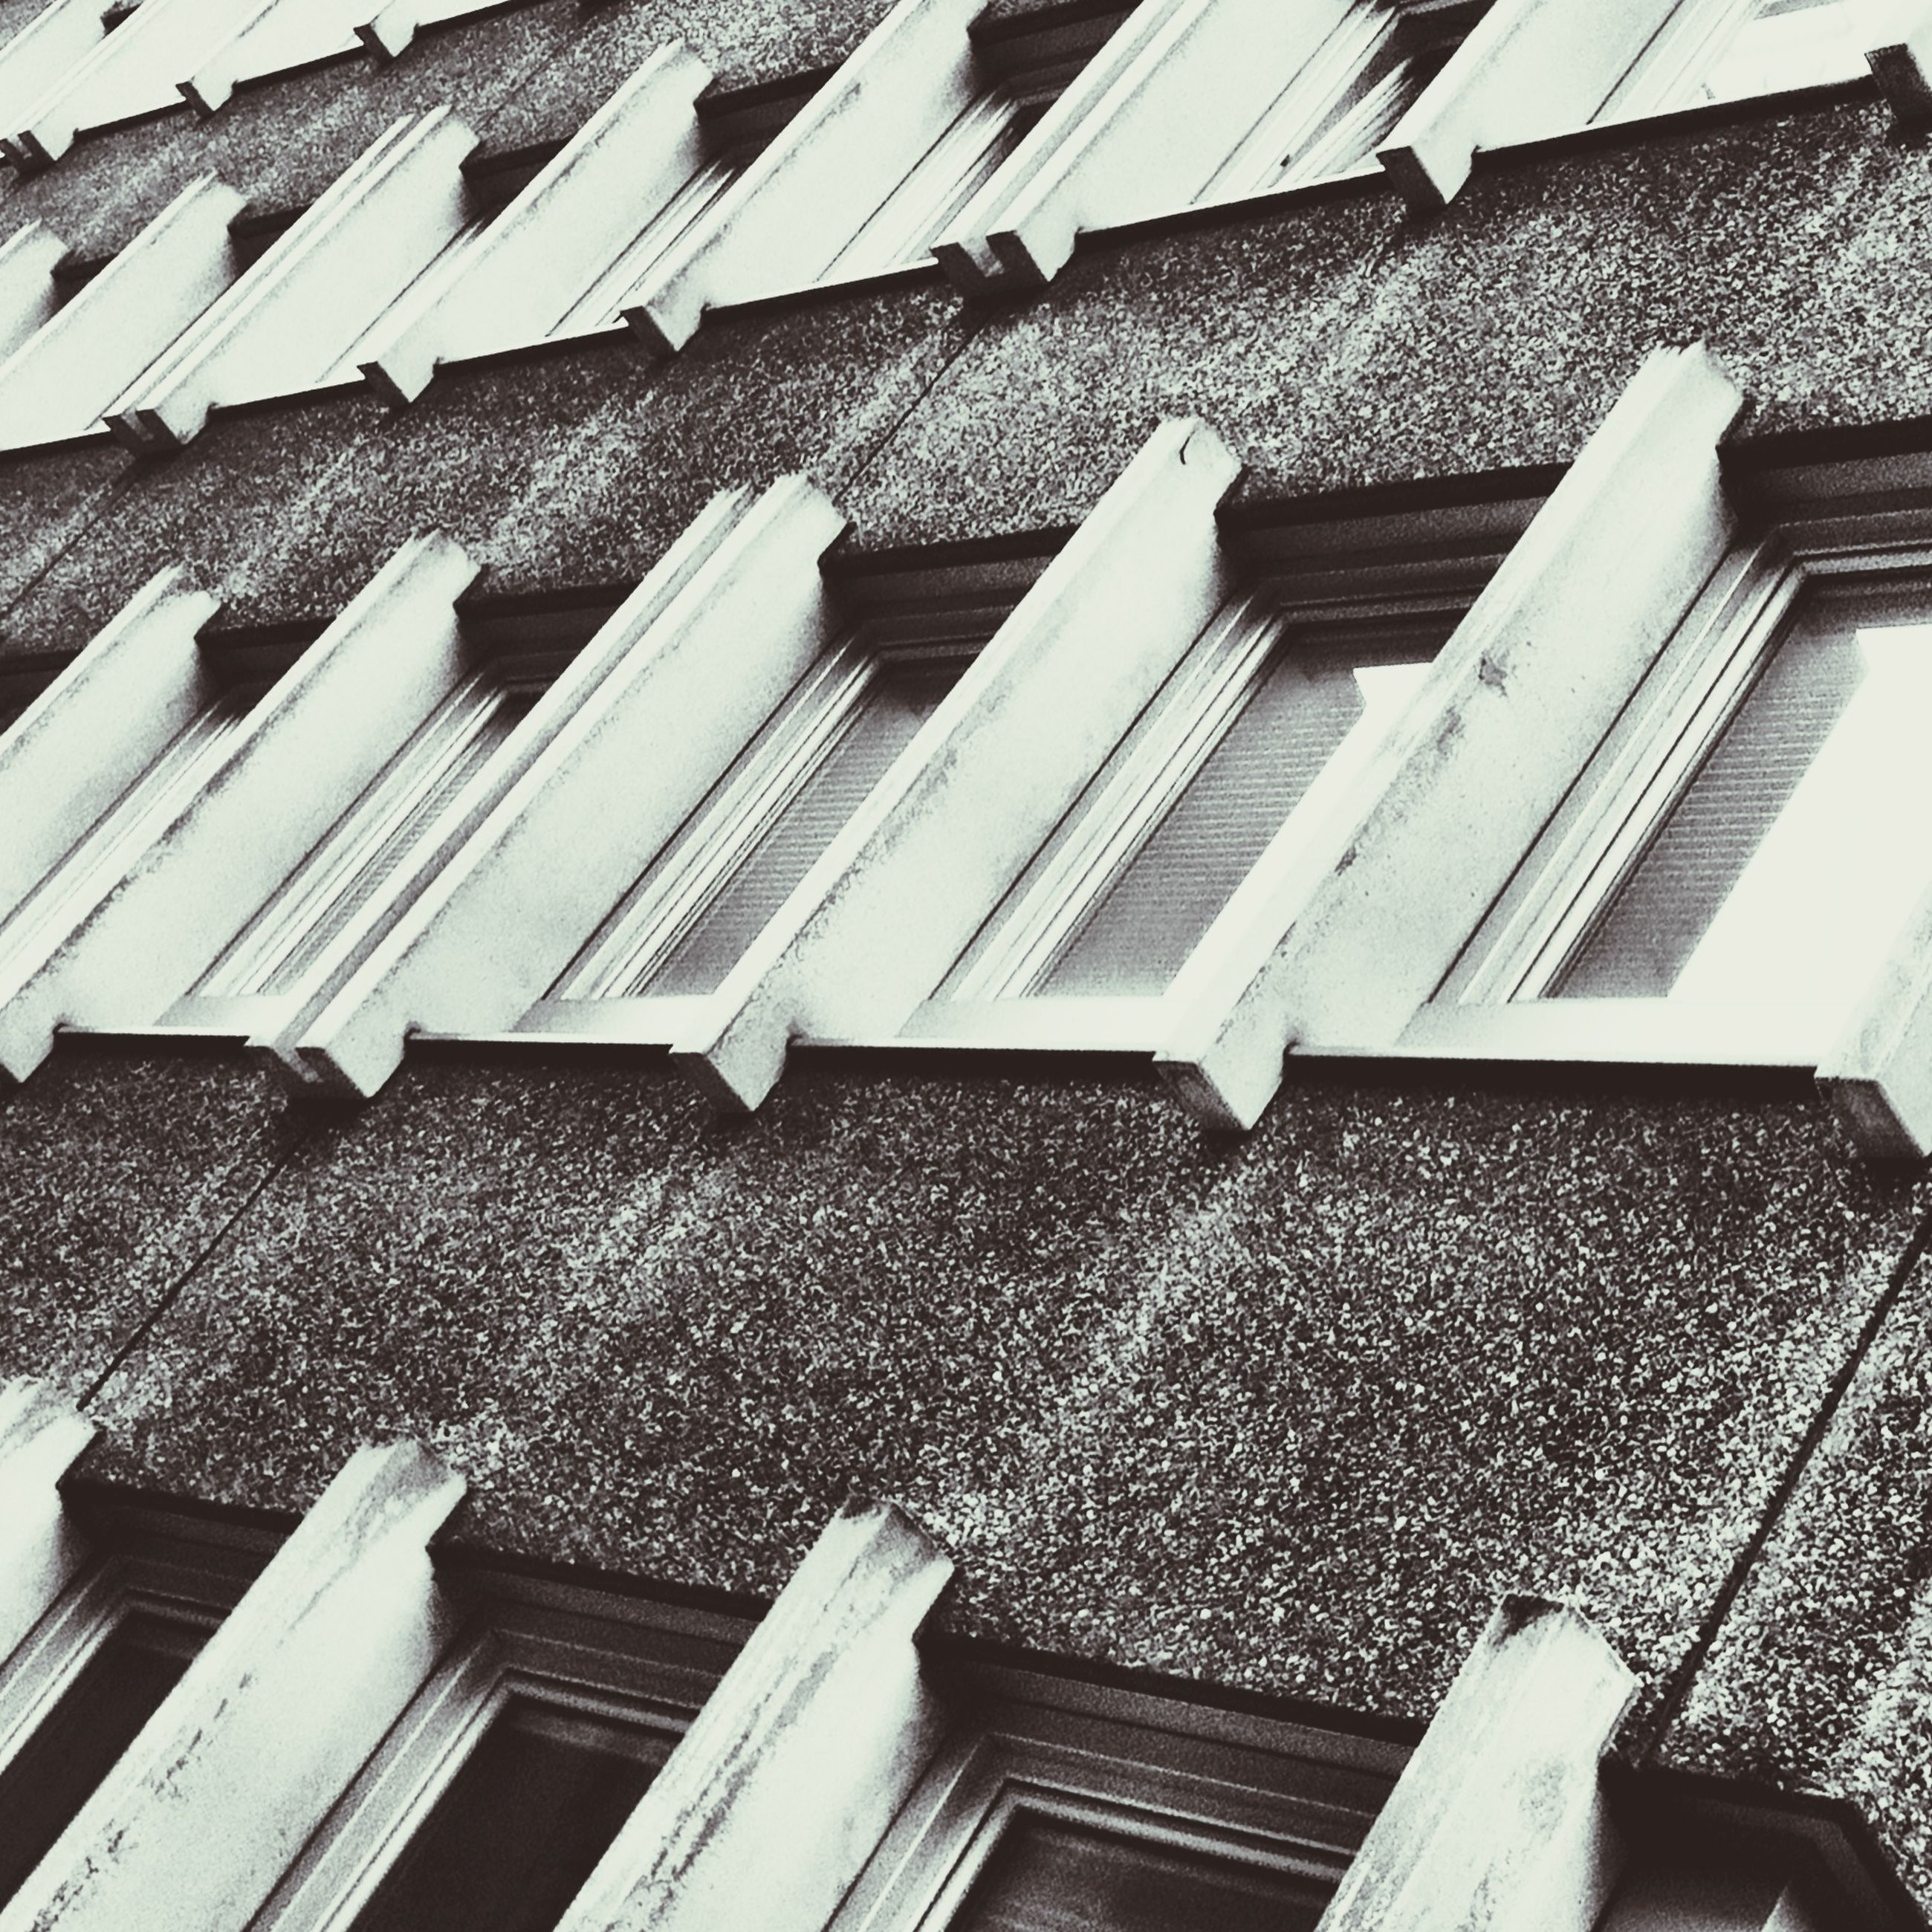 building exterior, architecture, built structure, low angle view, building, window, roof, residential building, residential structure, day, outdoors, city, no people, in a row, house, pattern, sky, high angle view, balcony, sunlight